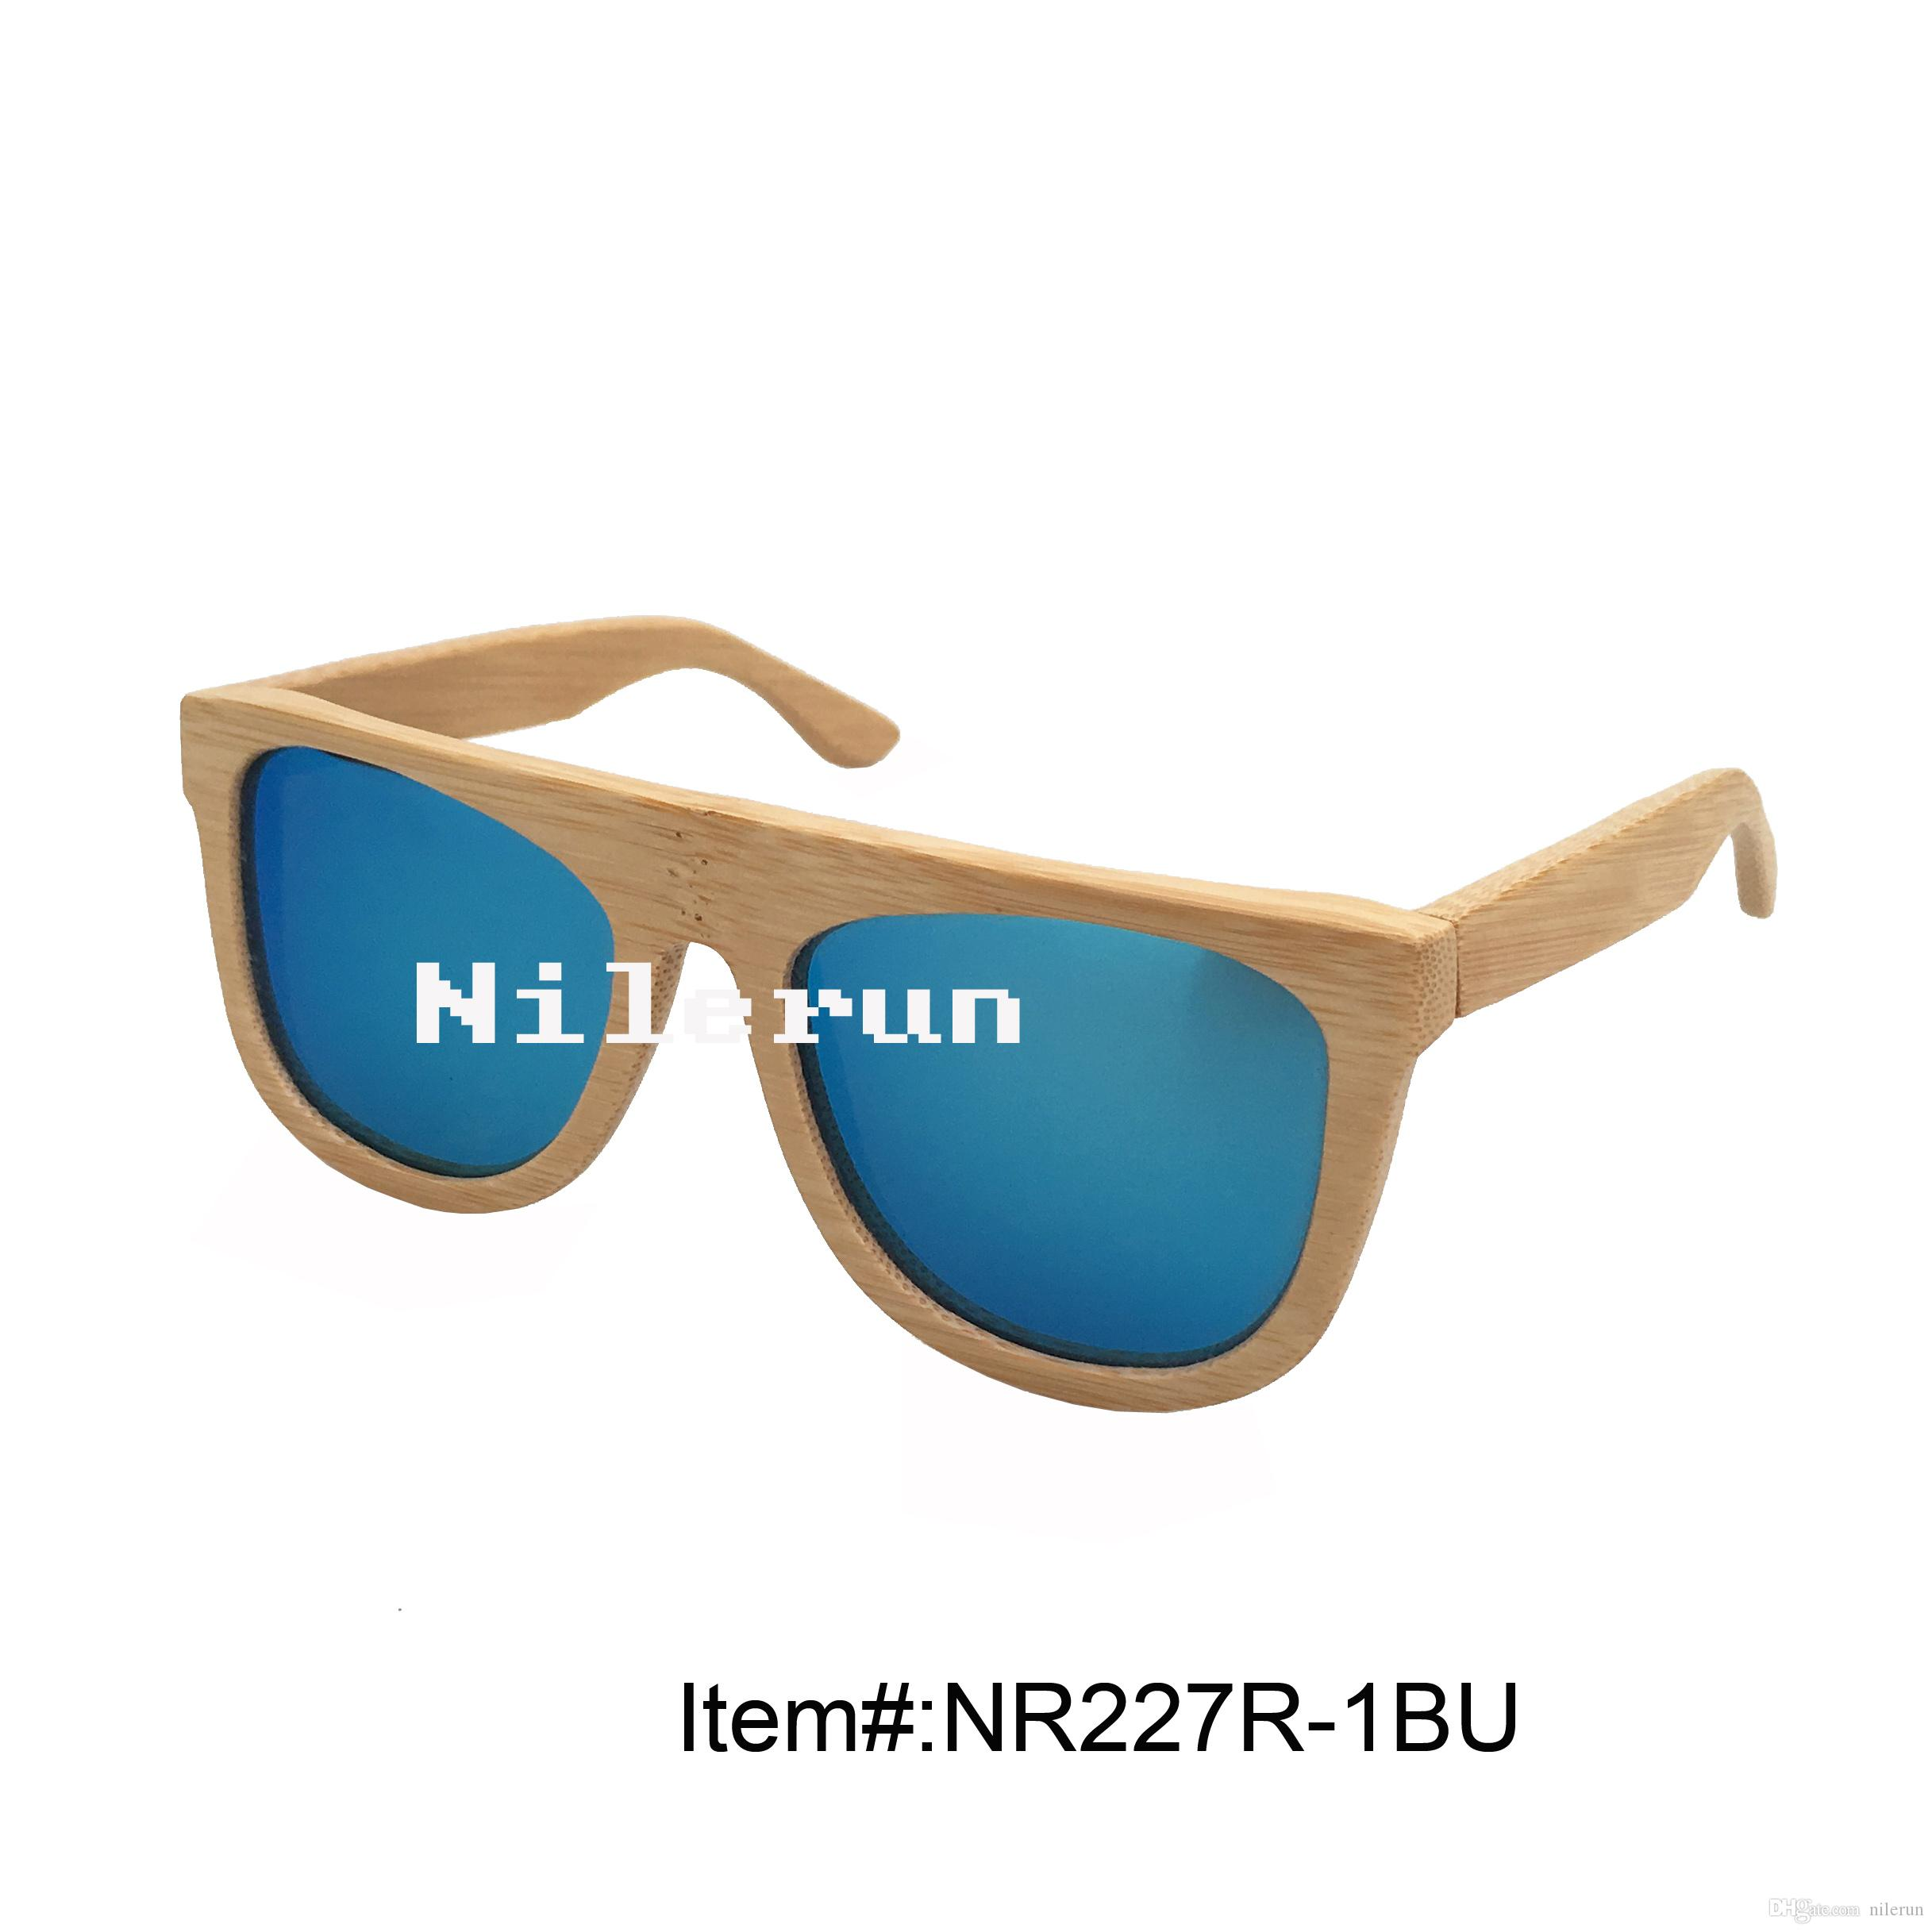 1ee64581d4 Fashionable Blue Polarized Lens Bamboo Frame Sunglasses Bamboo Frame  Sunglasses Mirror Blue Bamboo Sunglasses Blue Polarized Bamboo Sunglasses  Online with ...